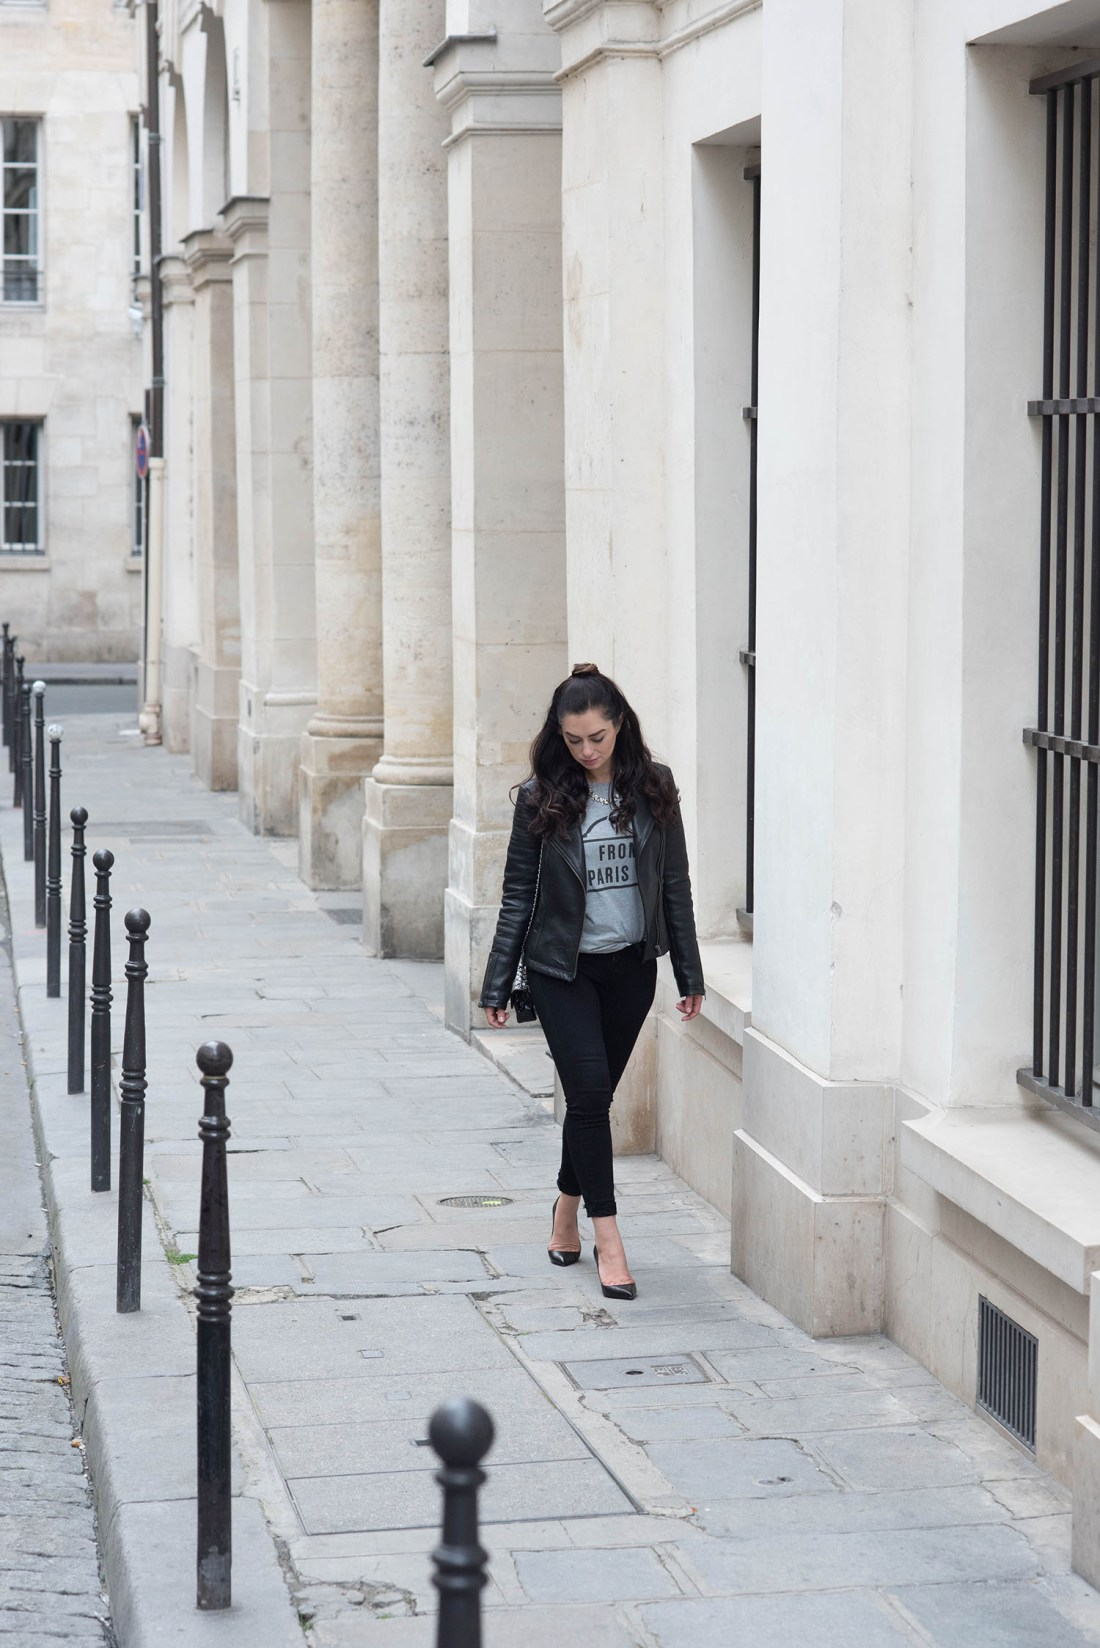 Canadian fashion blogger Cee Fardoe of Coco & Vera walks outside the Palais Royal wearing Paige jeans and Christian Louboutin Pigalle pumps